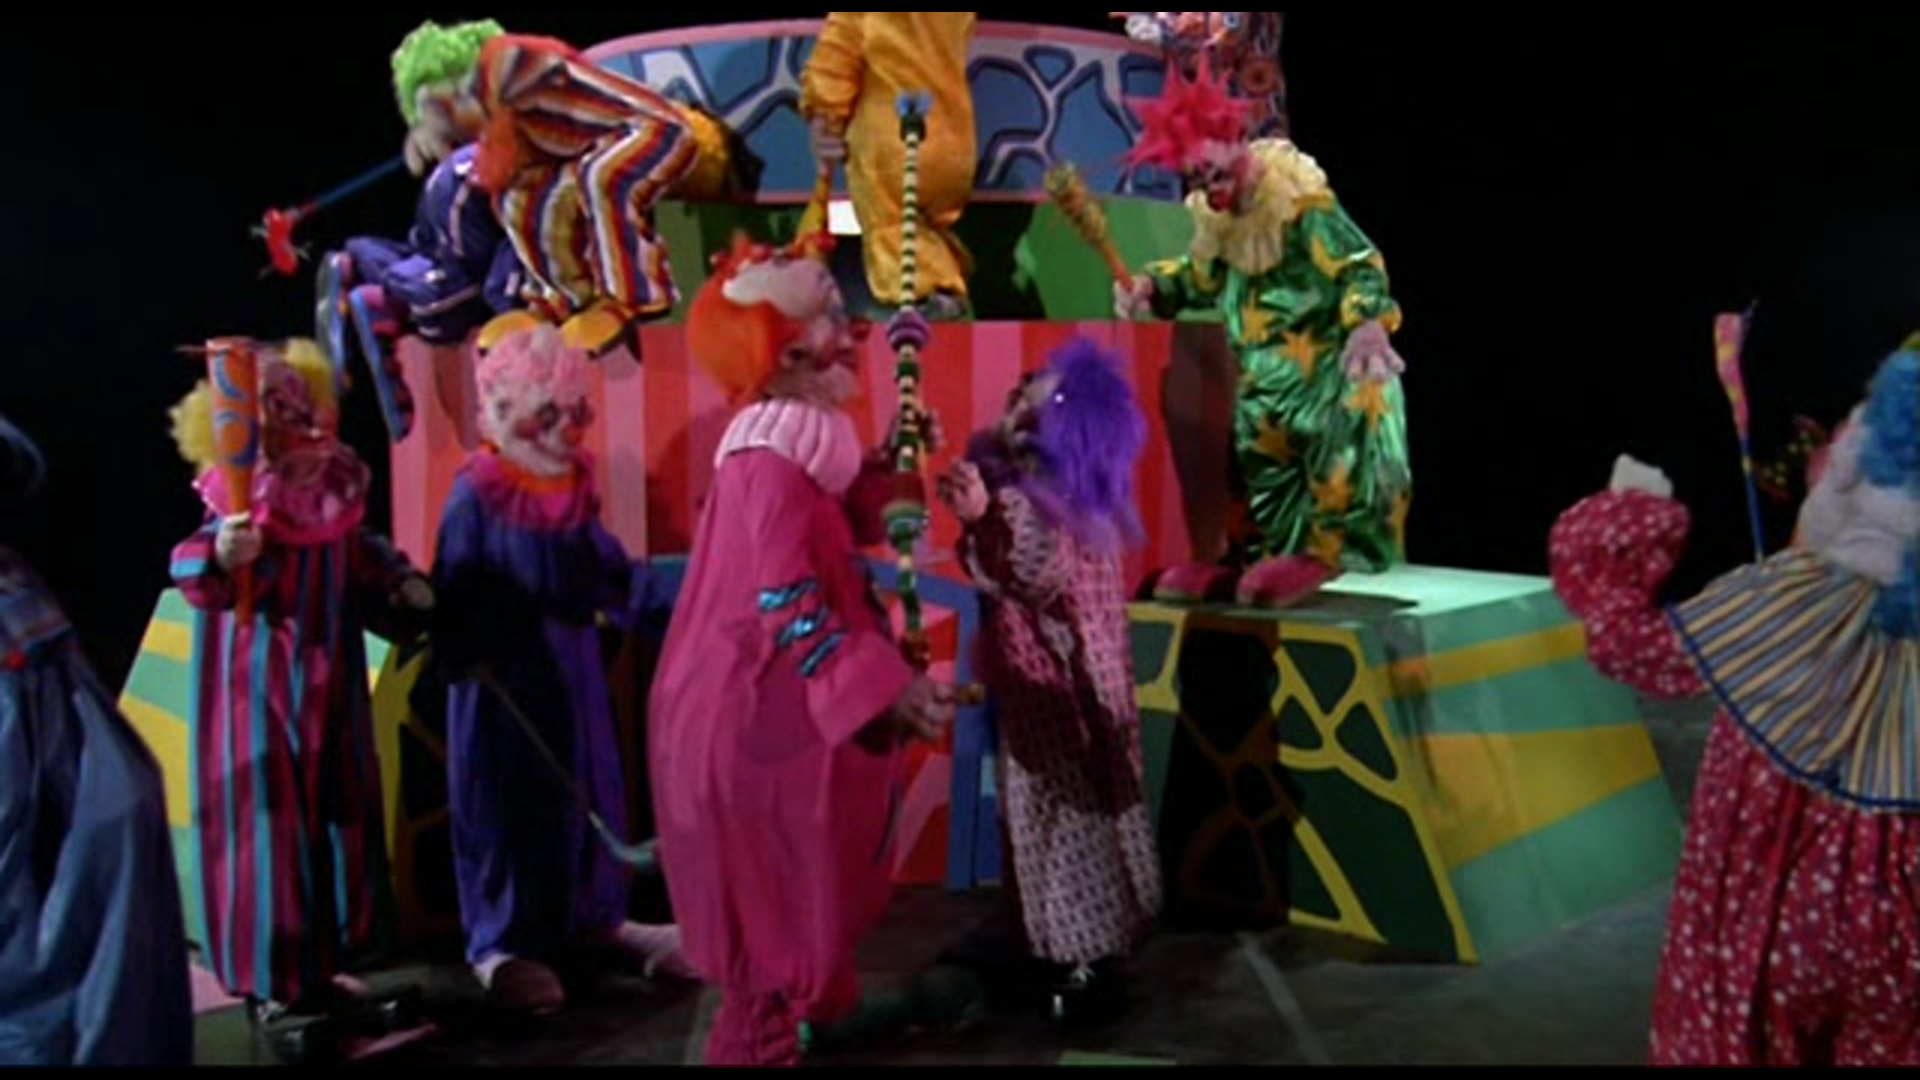 Image killer klowns screenshot killer klowns for Return of the killer klowns from outer space